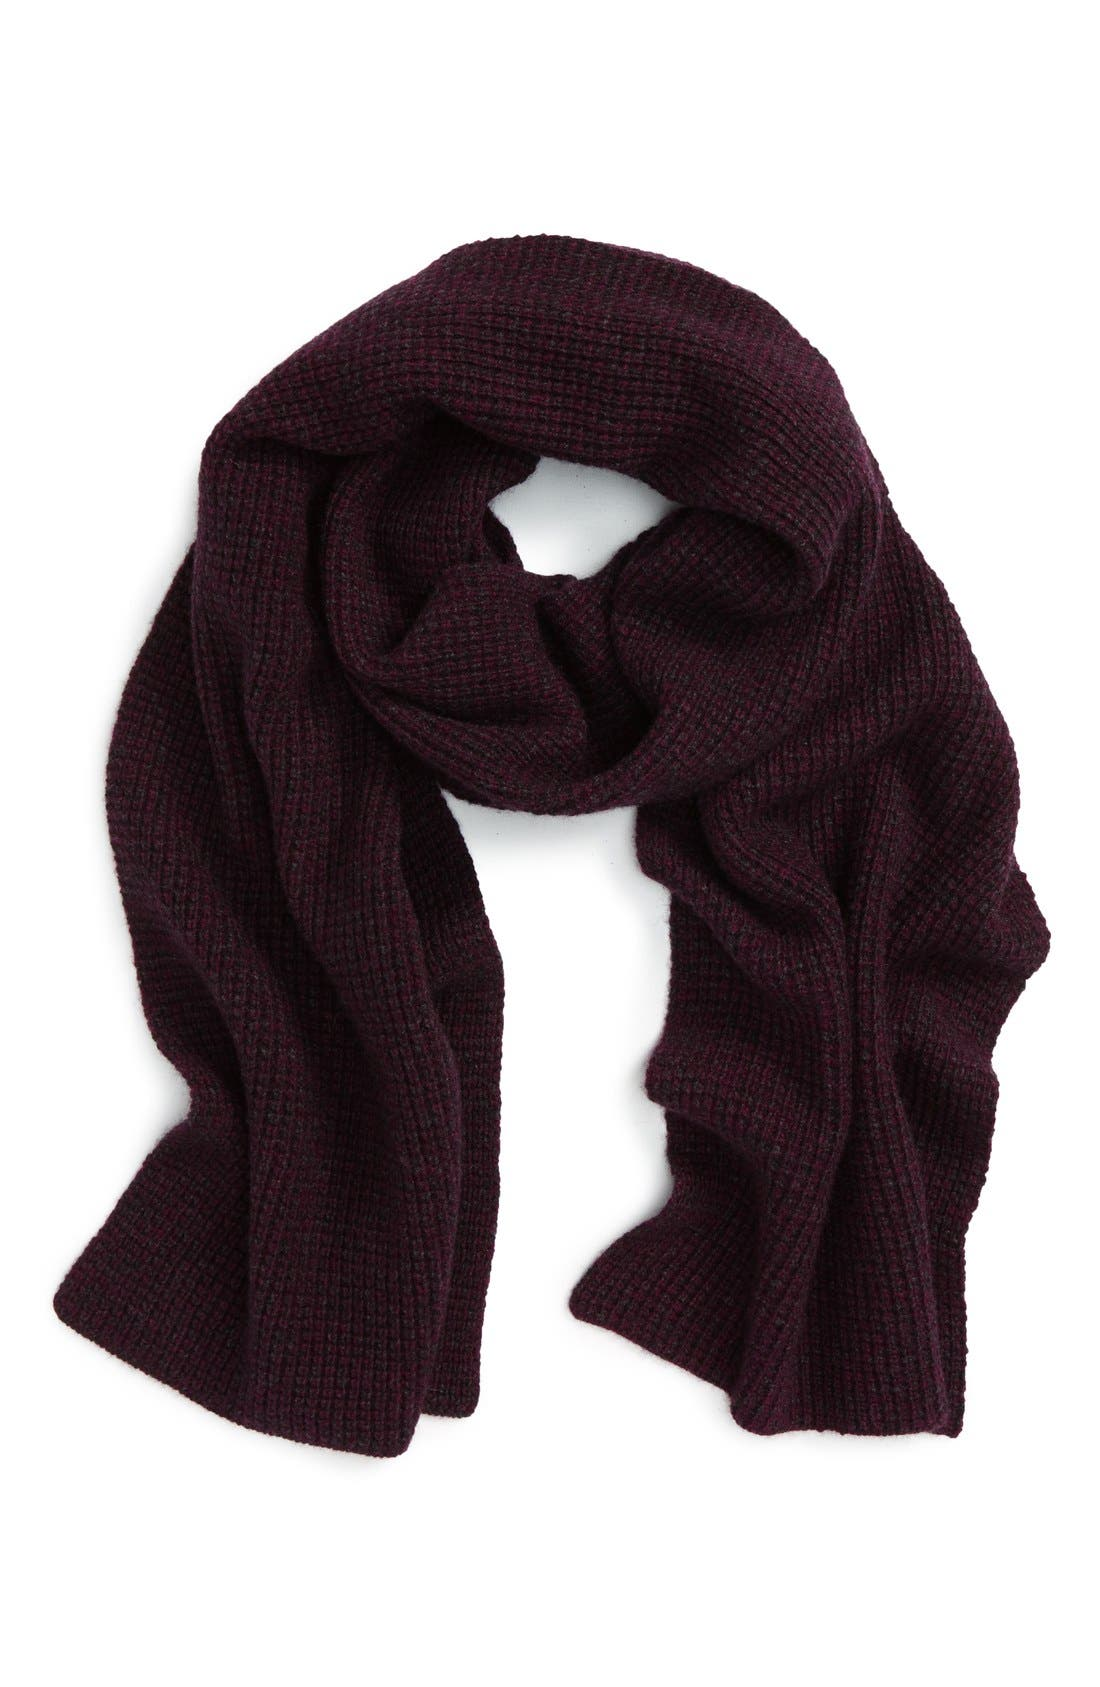 Calibrate Wool & Cashmere Scarf